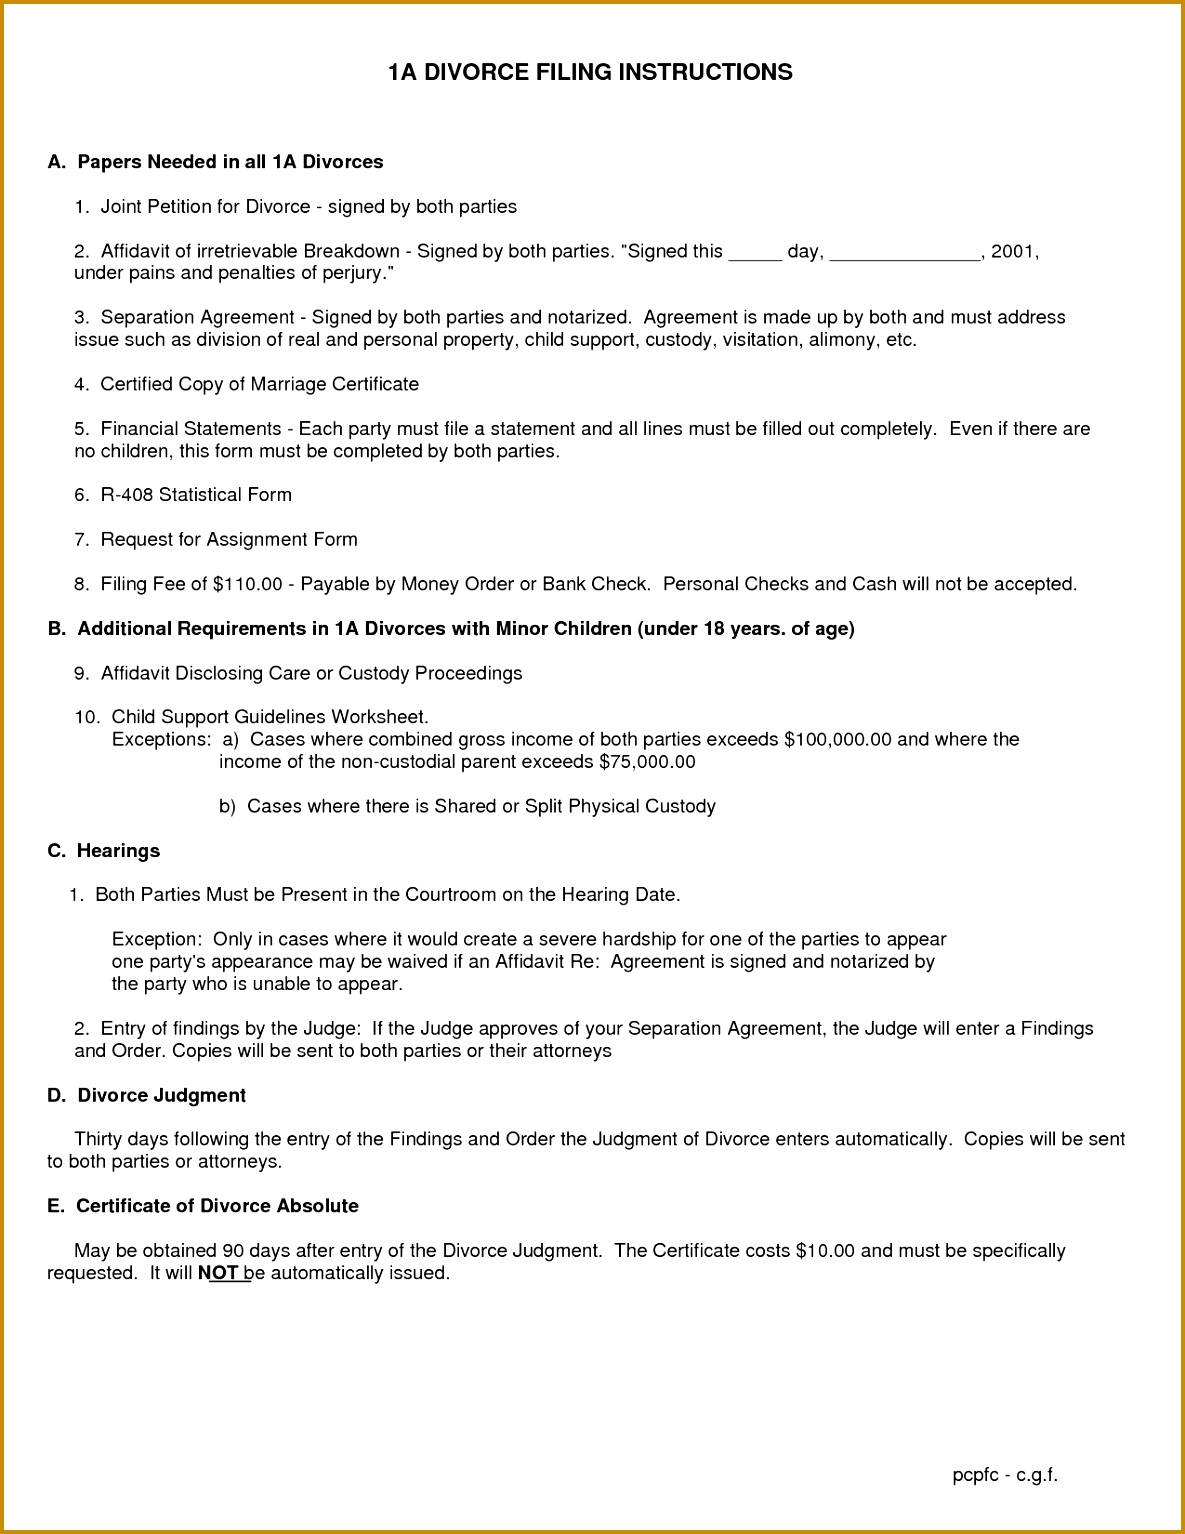 Separation Agreement tario Template by Separation Agreement Sample Massachusetts Best Resumes Curiculum 15341185